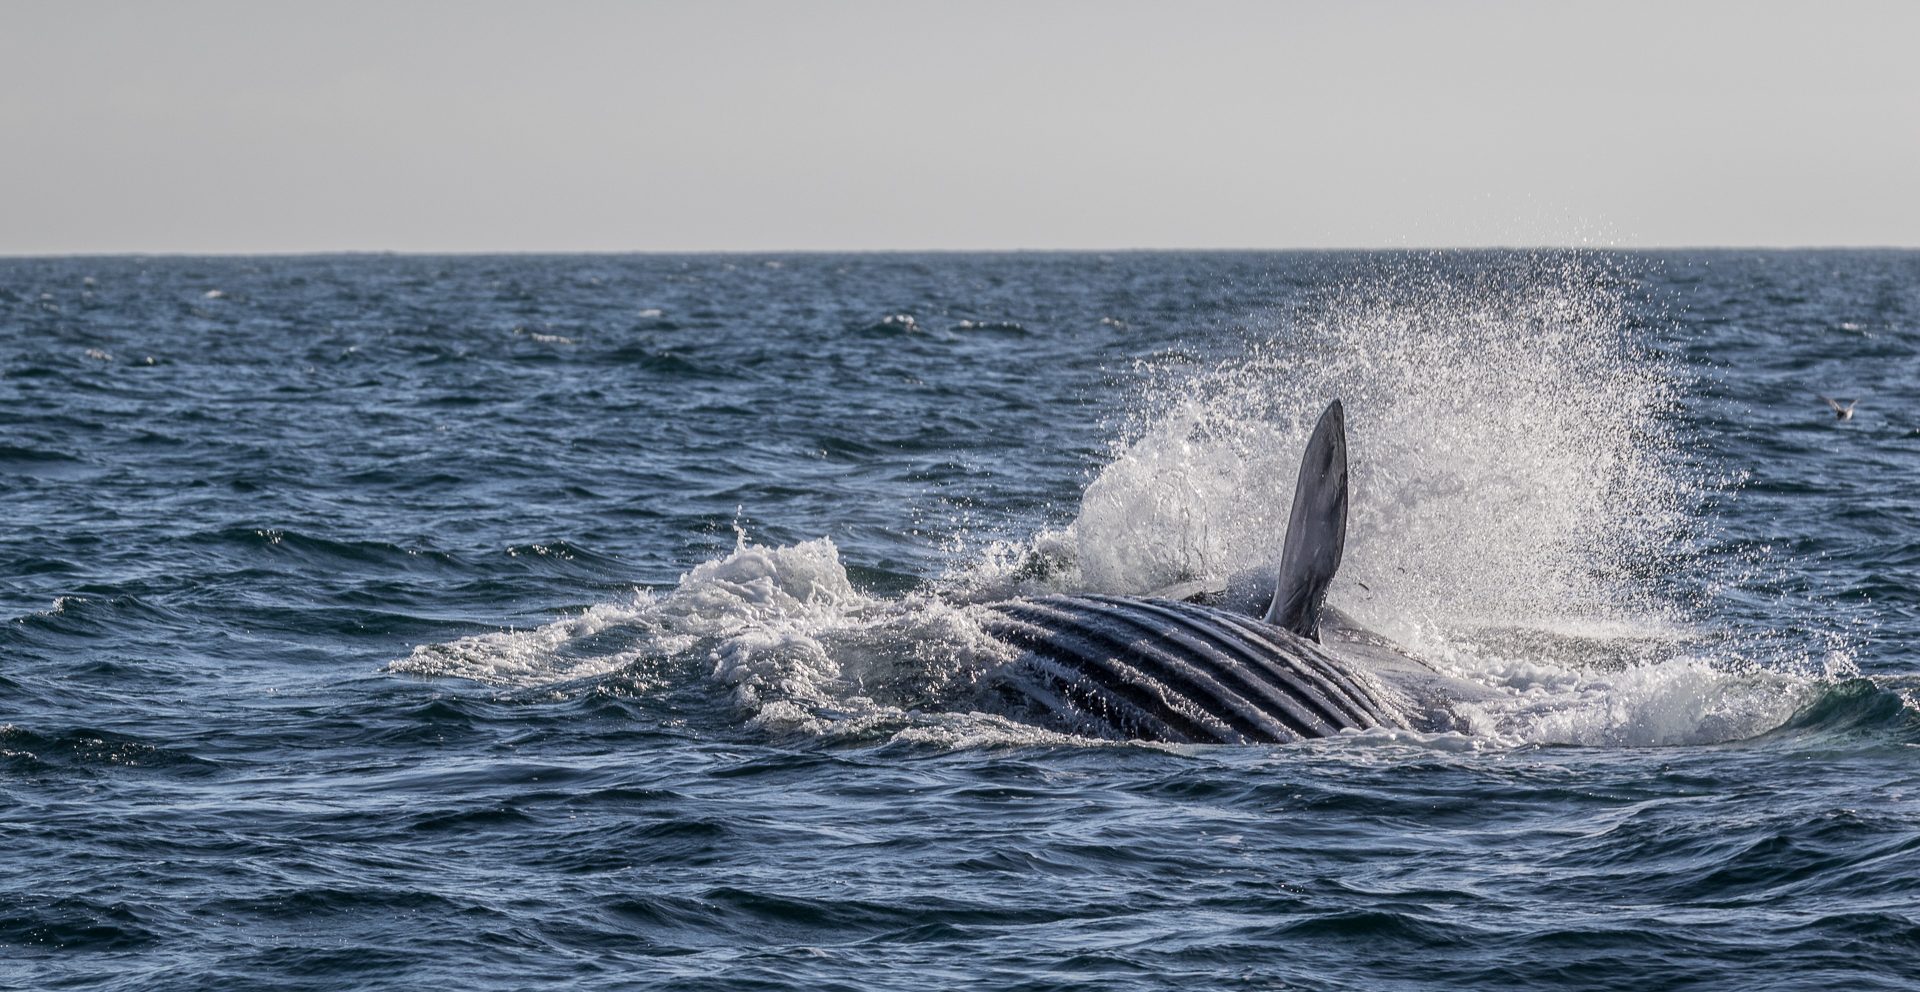 Fin whale lunge feeding. Photo: Whale Watch West Cork